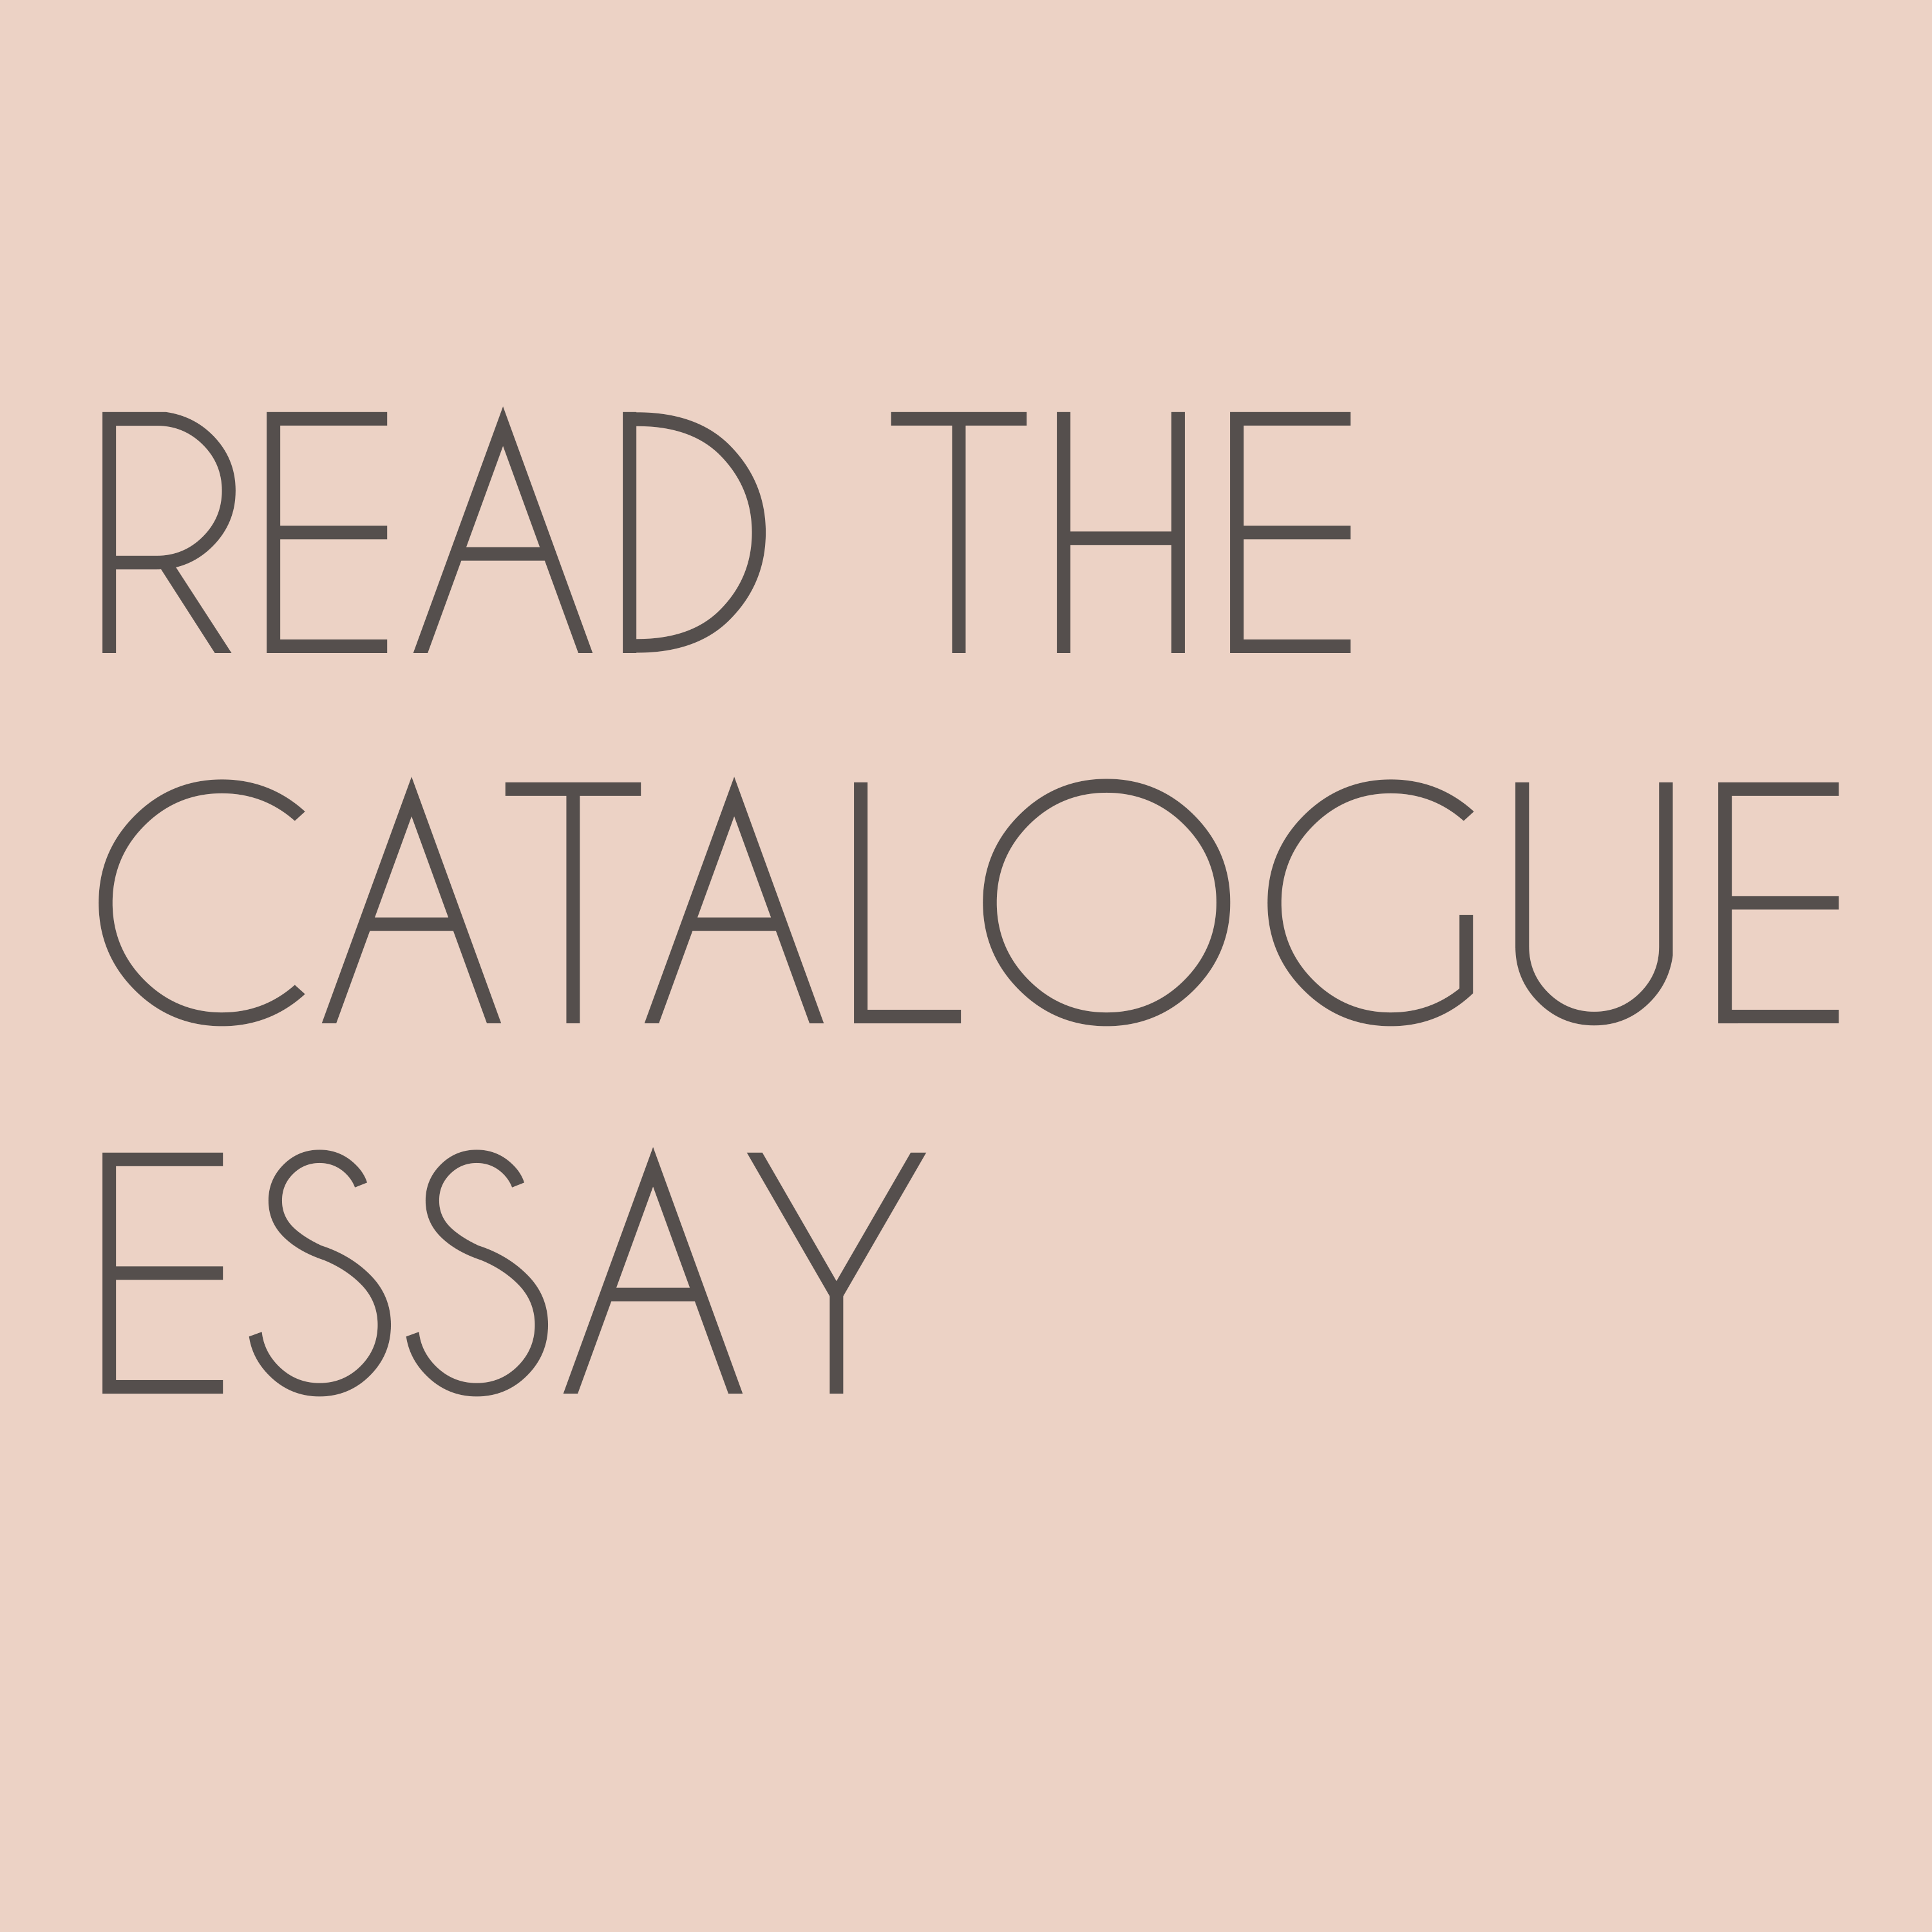 READ THE ESSAY